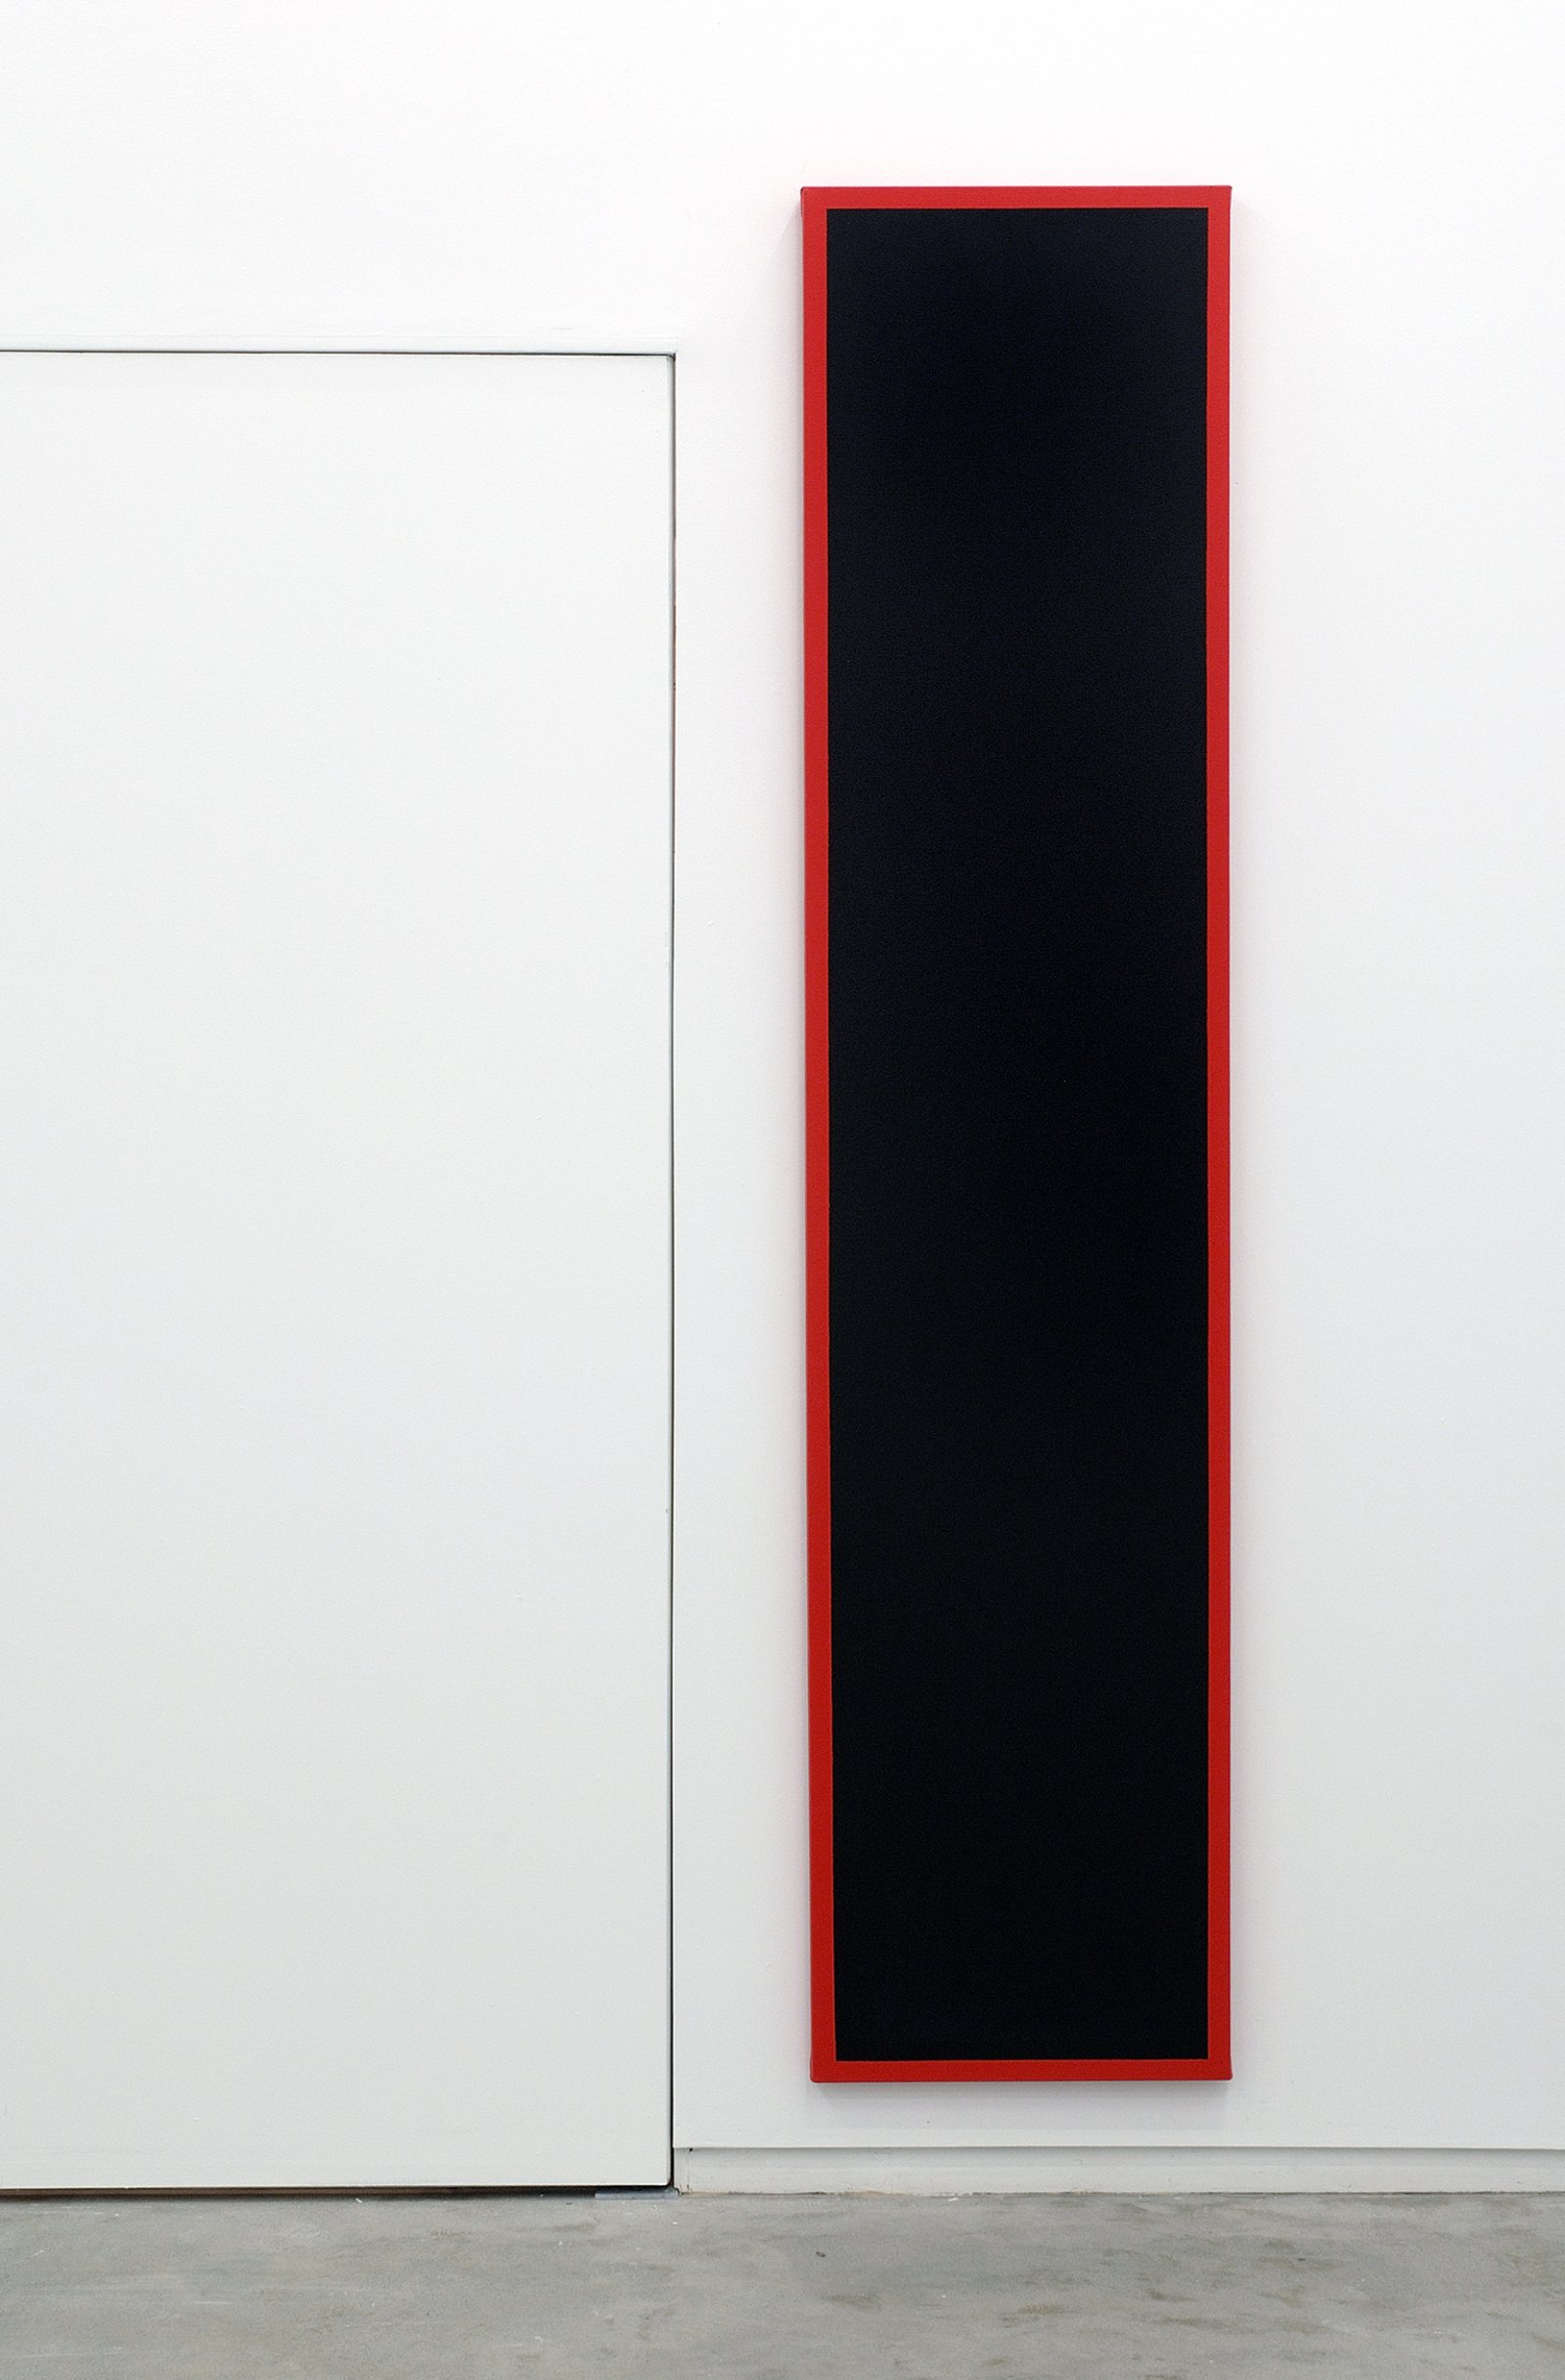 ​​​Ian Wallace, Untitled (Black Monochrome with Red), 1967–2007, acrylic on canvas, 90 x 20 in. (229 x 51 cm)​​​​​​ by Ian Wallace